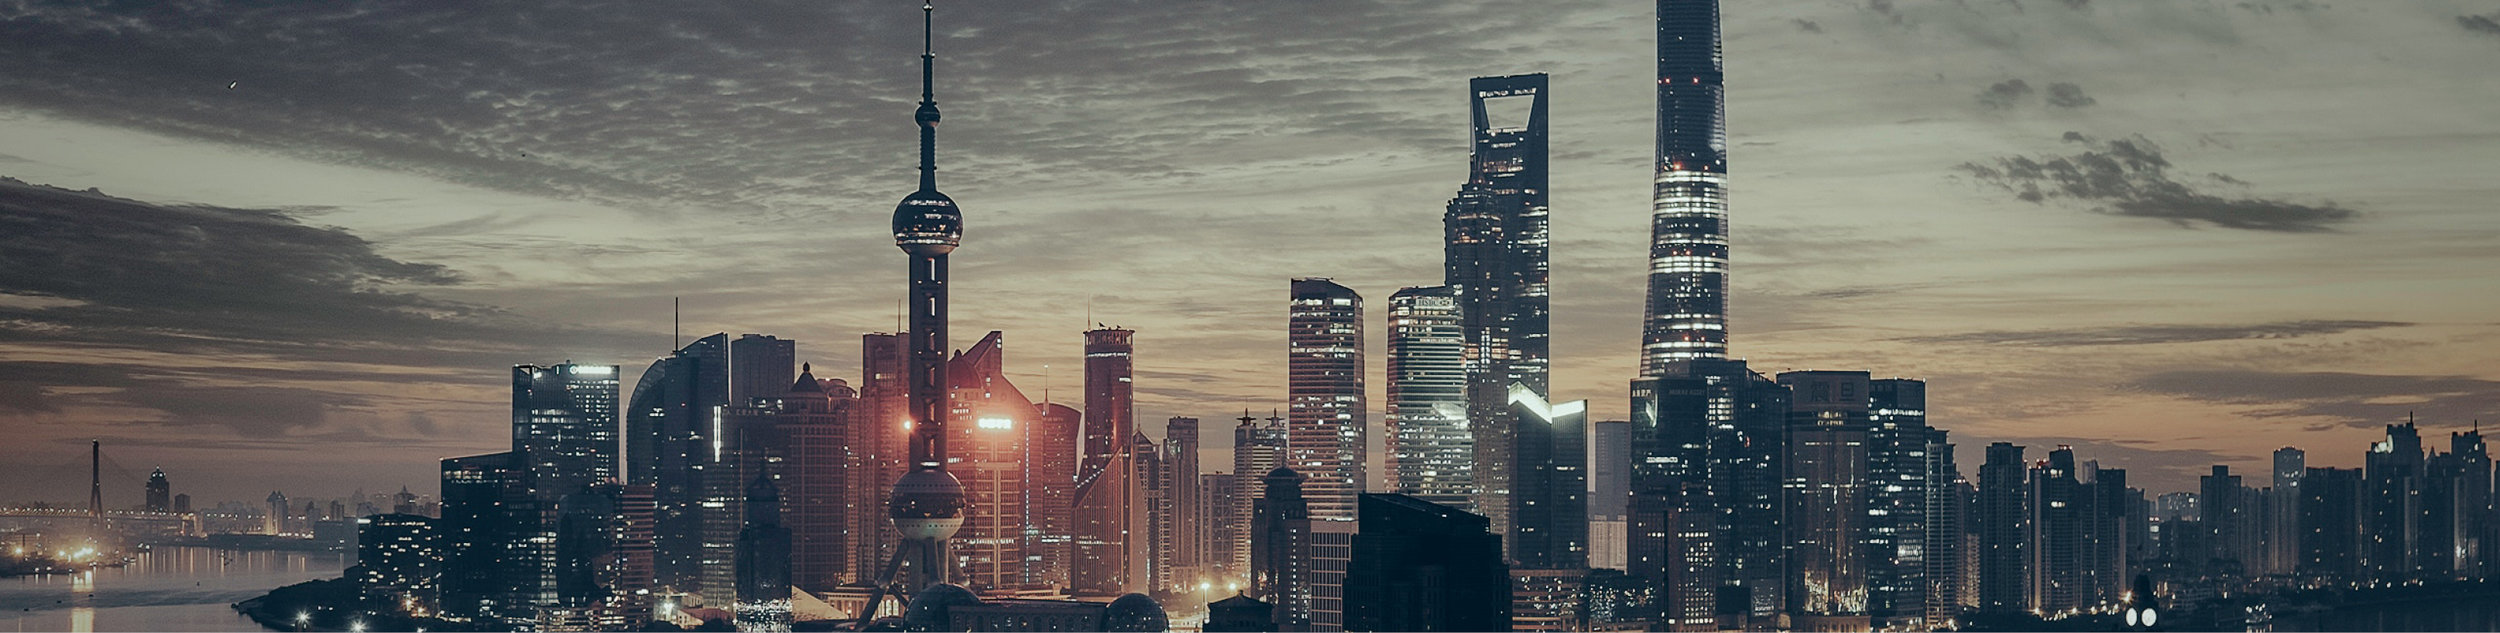 The Top 10 Reasons Why Chinese Investment & Immigration is On the Rise - By Dean Jones